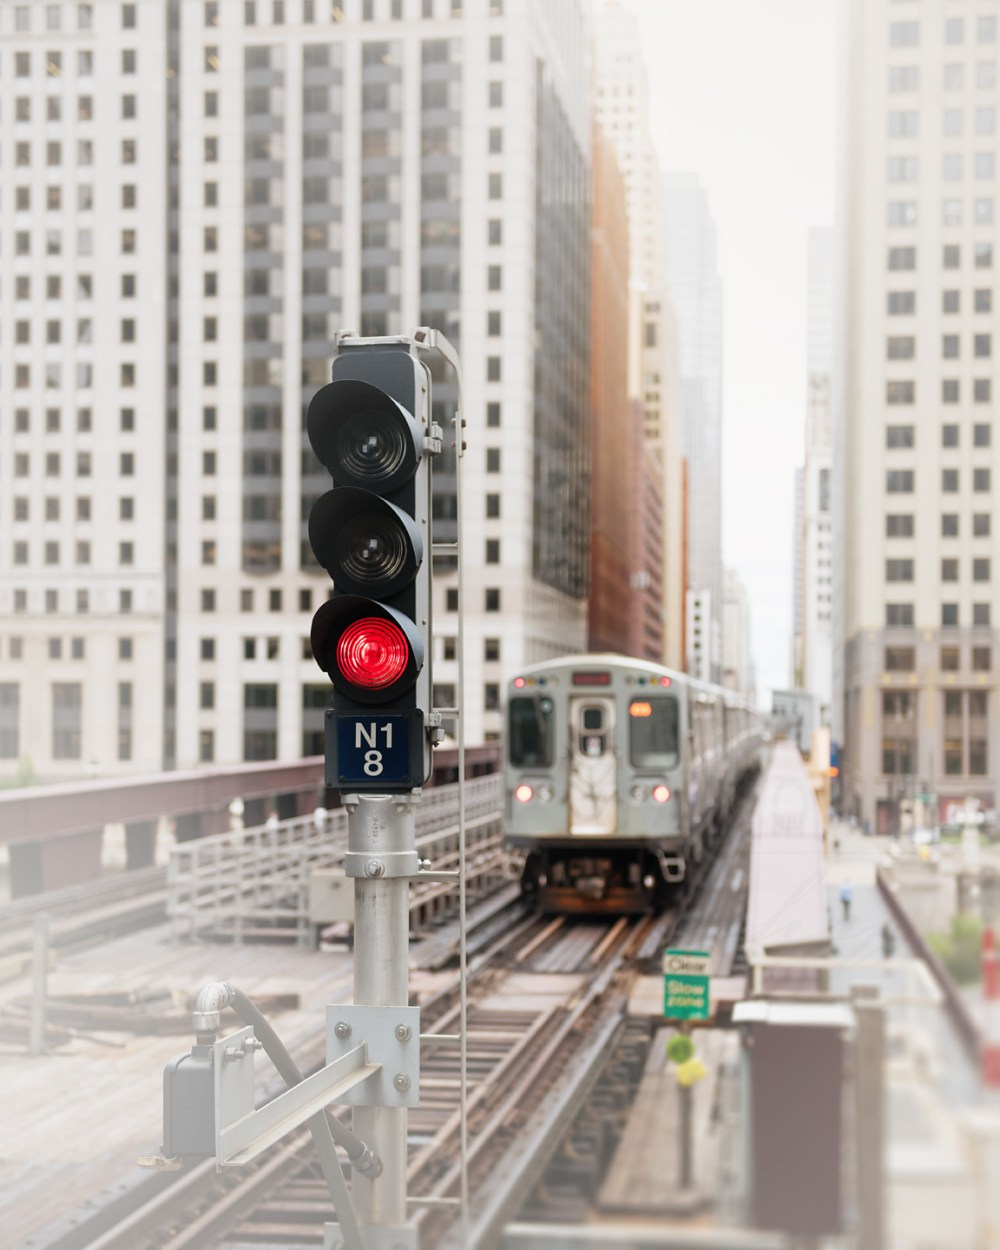 CTA Orange line leaving the Merchandise Mart in the Loop in downtown Chicago. Photography by local artist Tracey Capone.